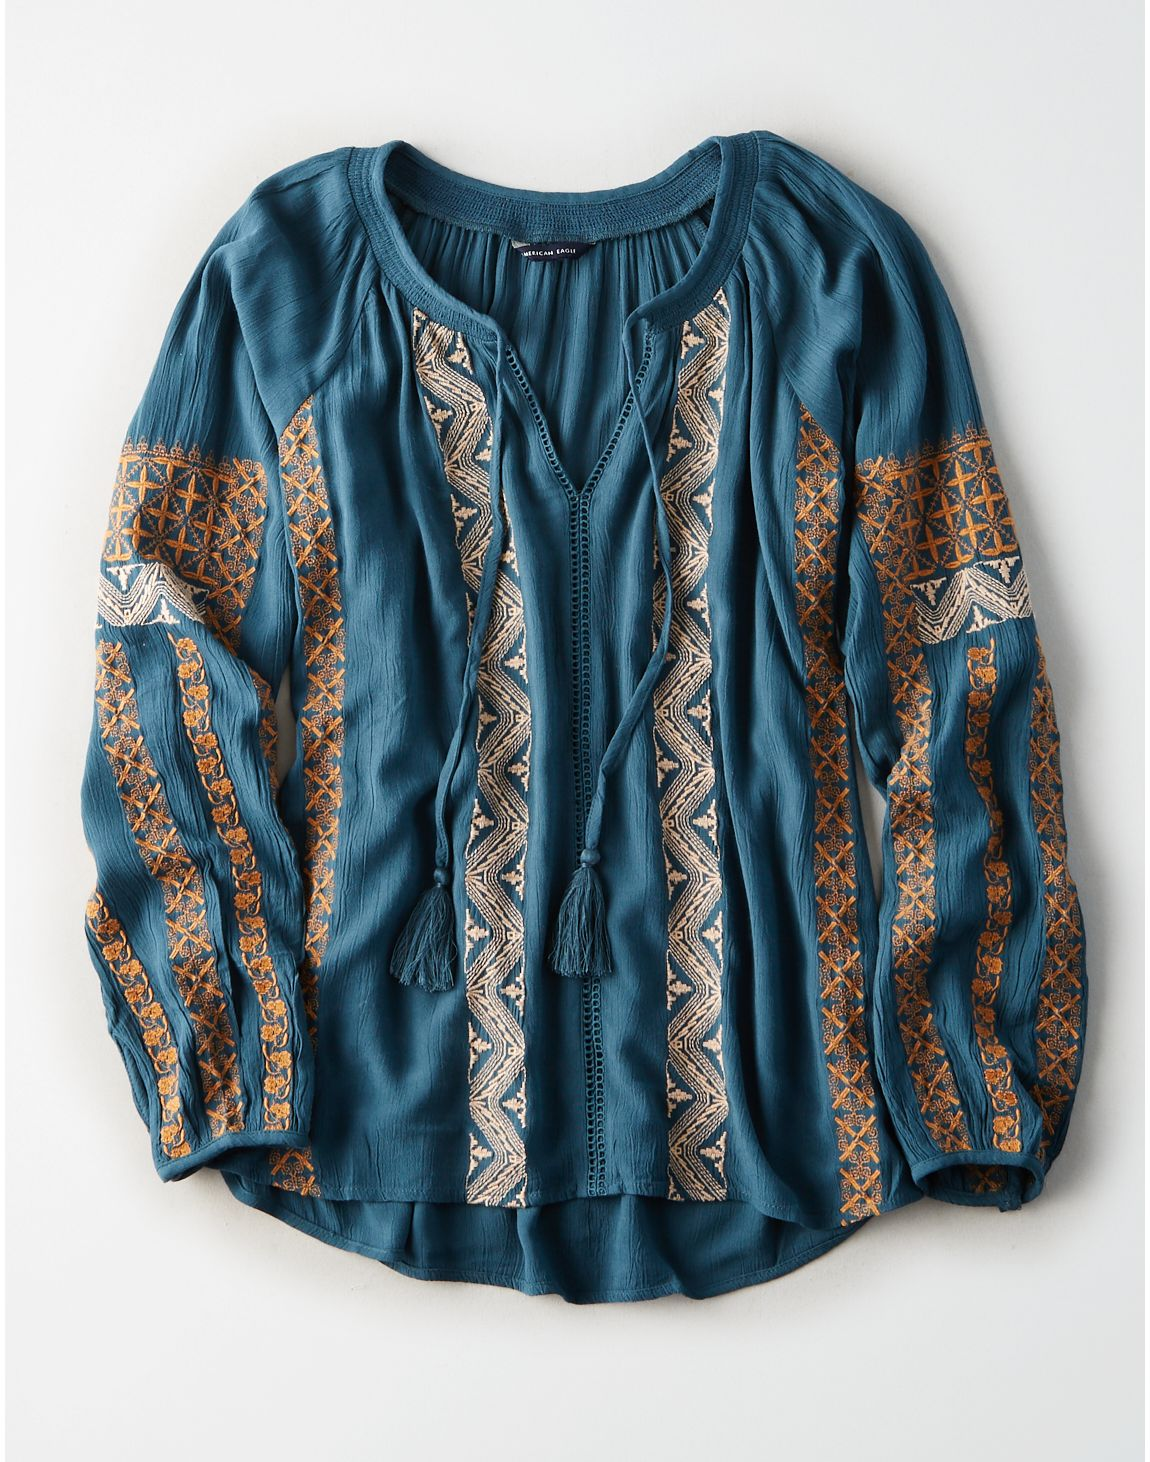 American Eagle | AE Smocked Neck Peasant Top in Teal | American